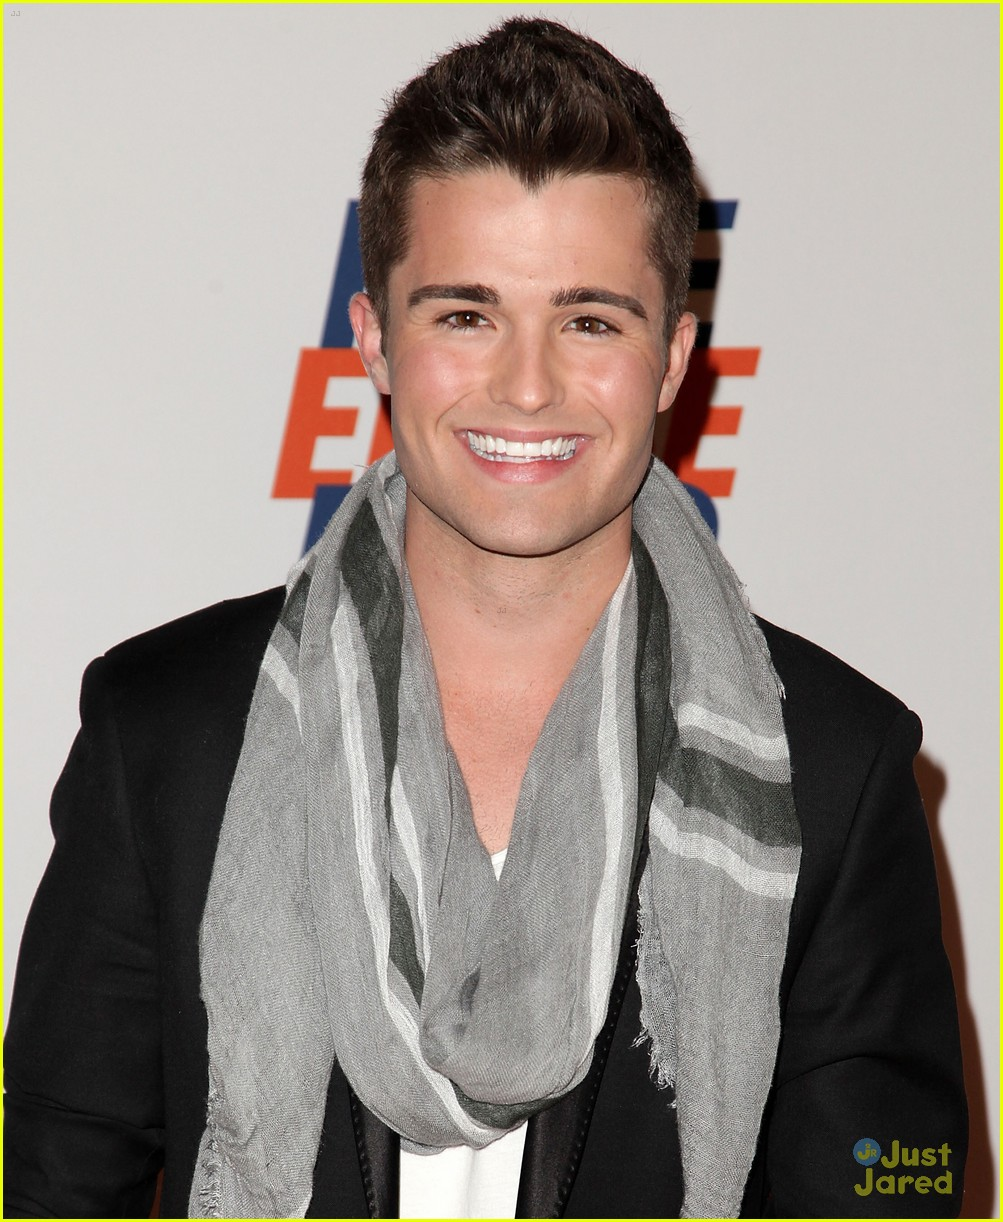 spencer boldman filmsspencer boldman and debby ryan, spencer boldman cruise, spencer boldman films, spencer boldman and kelli berglund, spencer boldman biography, spencer boldman height, spencer boldman how old, spencer boldman instagram, spencer boldman and selena gomez, spencer boldman and olivia holt, spencer boldman and antonia denardo, spencer boldman, spencer boldman girlfriend, spencer boldman 2015, spencer boldman snapchat, spencer boldman 21 jump street, spencer boldman lab rats, spencer boldman 2014, spencer boldman imdb, spencer boldman tumblr